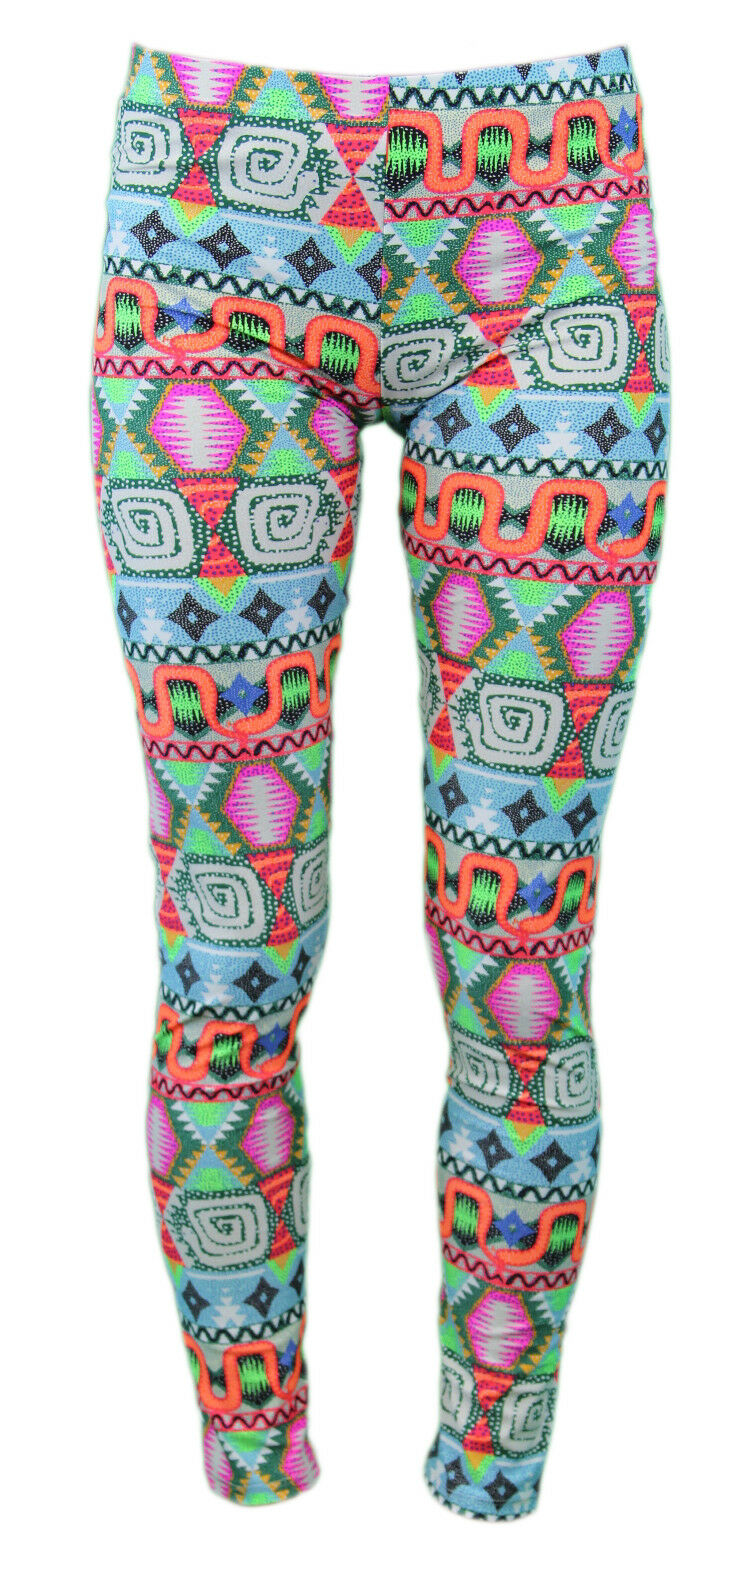 MARA HOFFMAN Astrodreamer Graphic Resort Wear Leggings  NEW